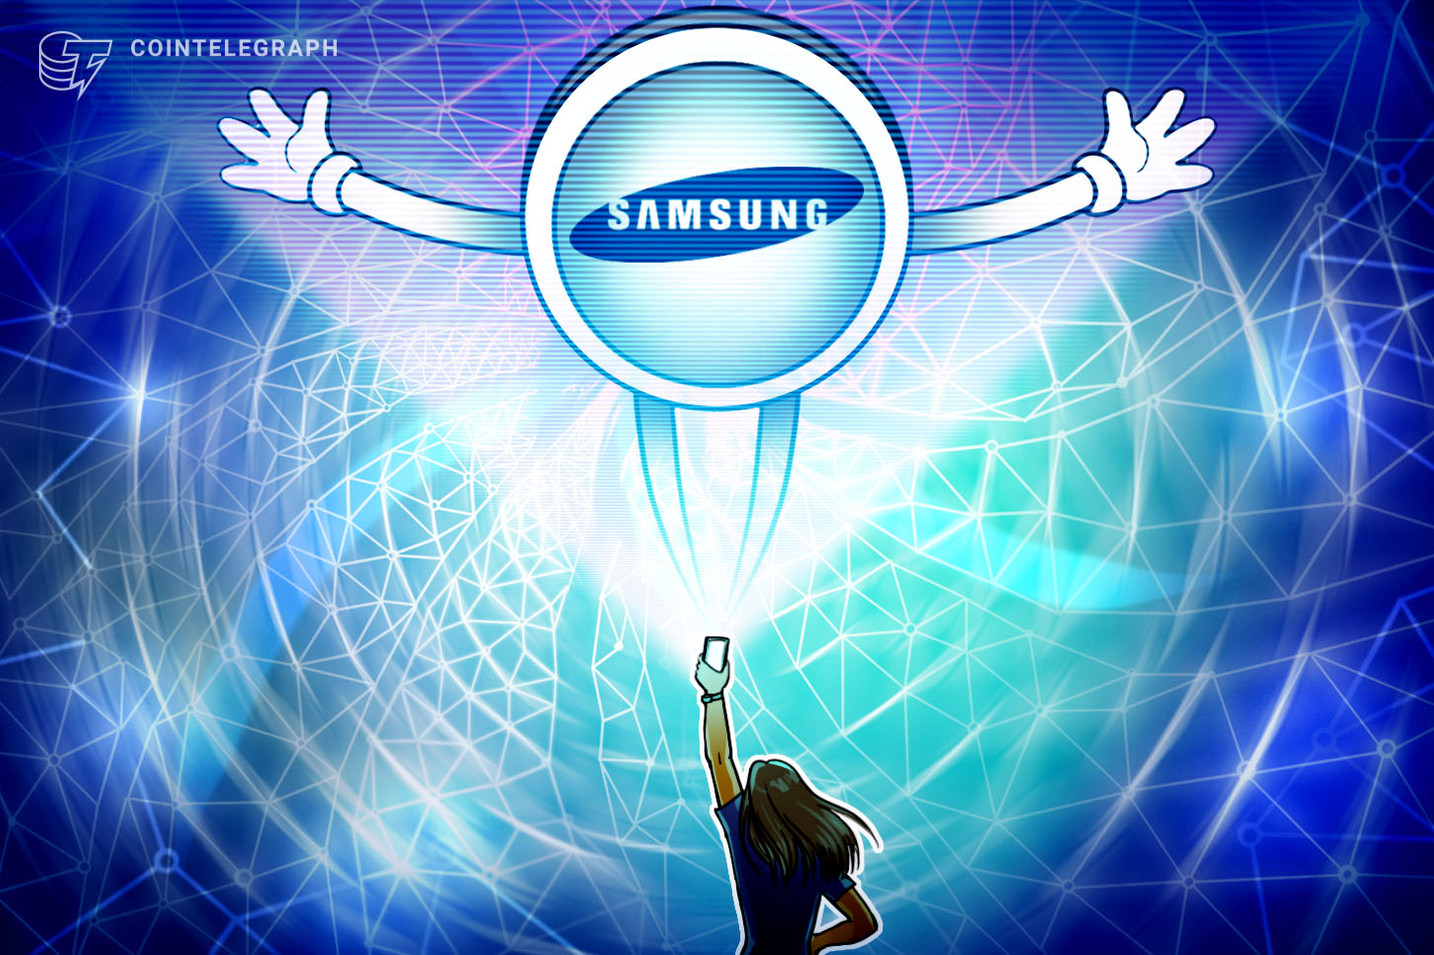 Samsung SDS inclui blockchain no Digital Transformation Framework